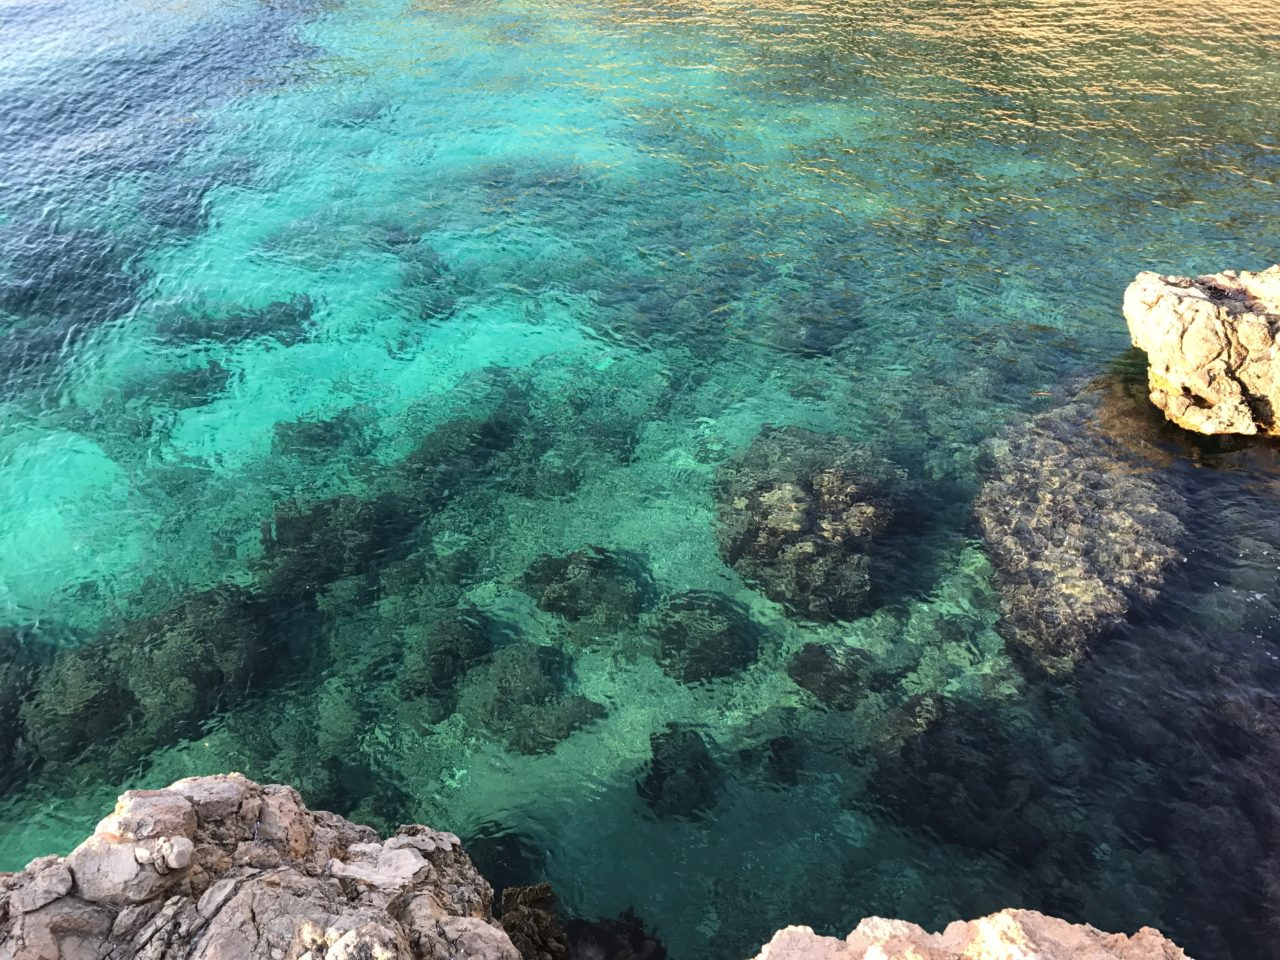 Tropical Ocean Clear Water With Rocks